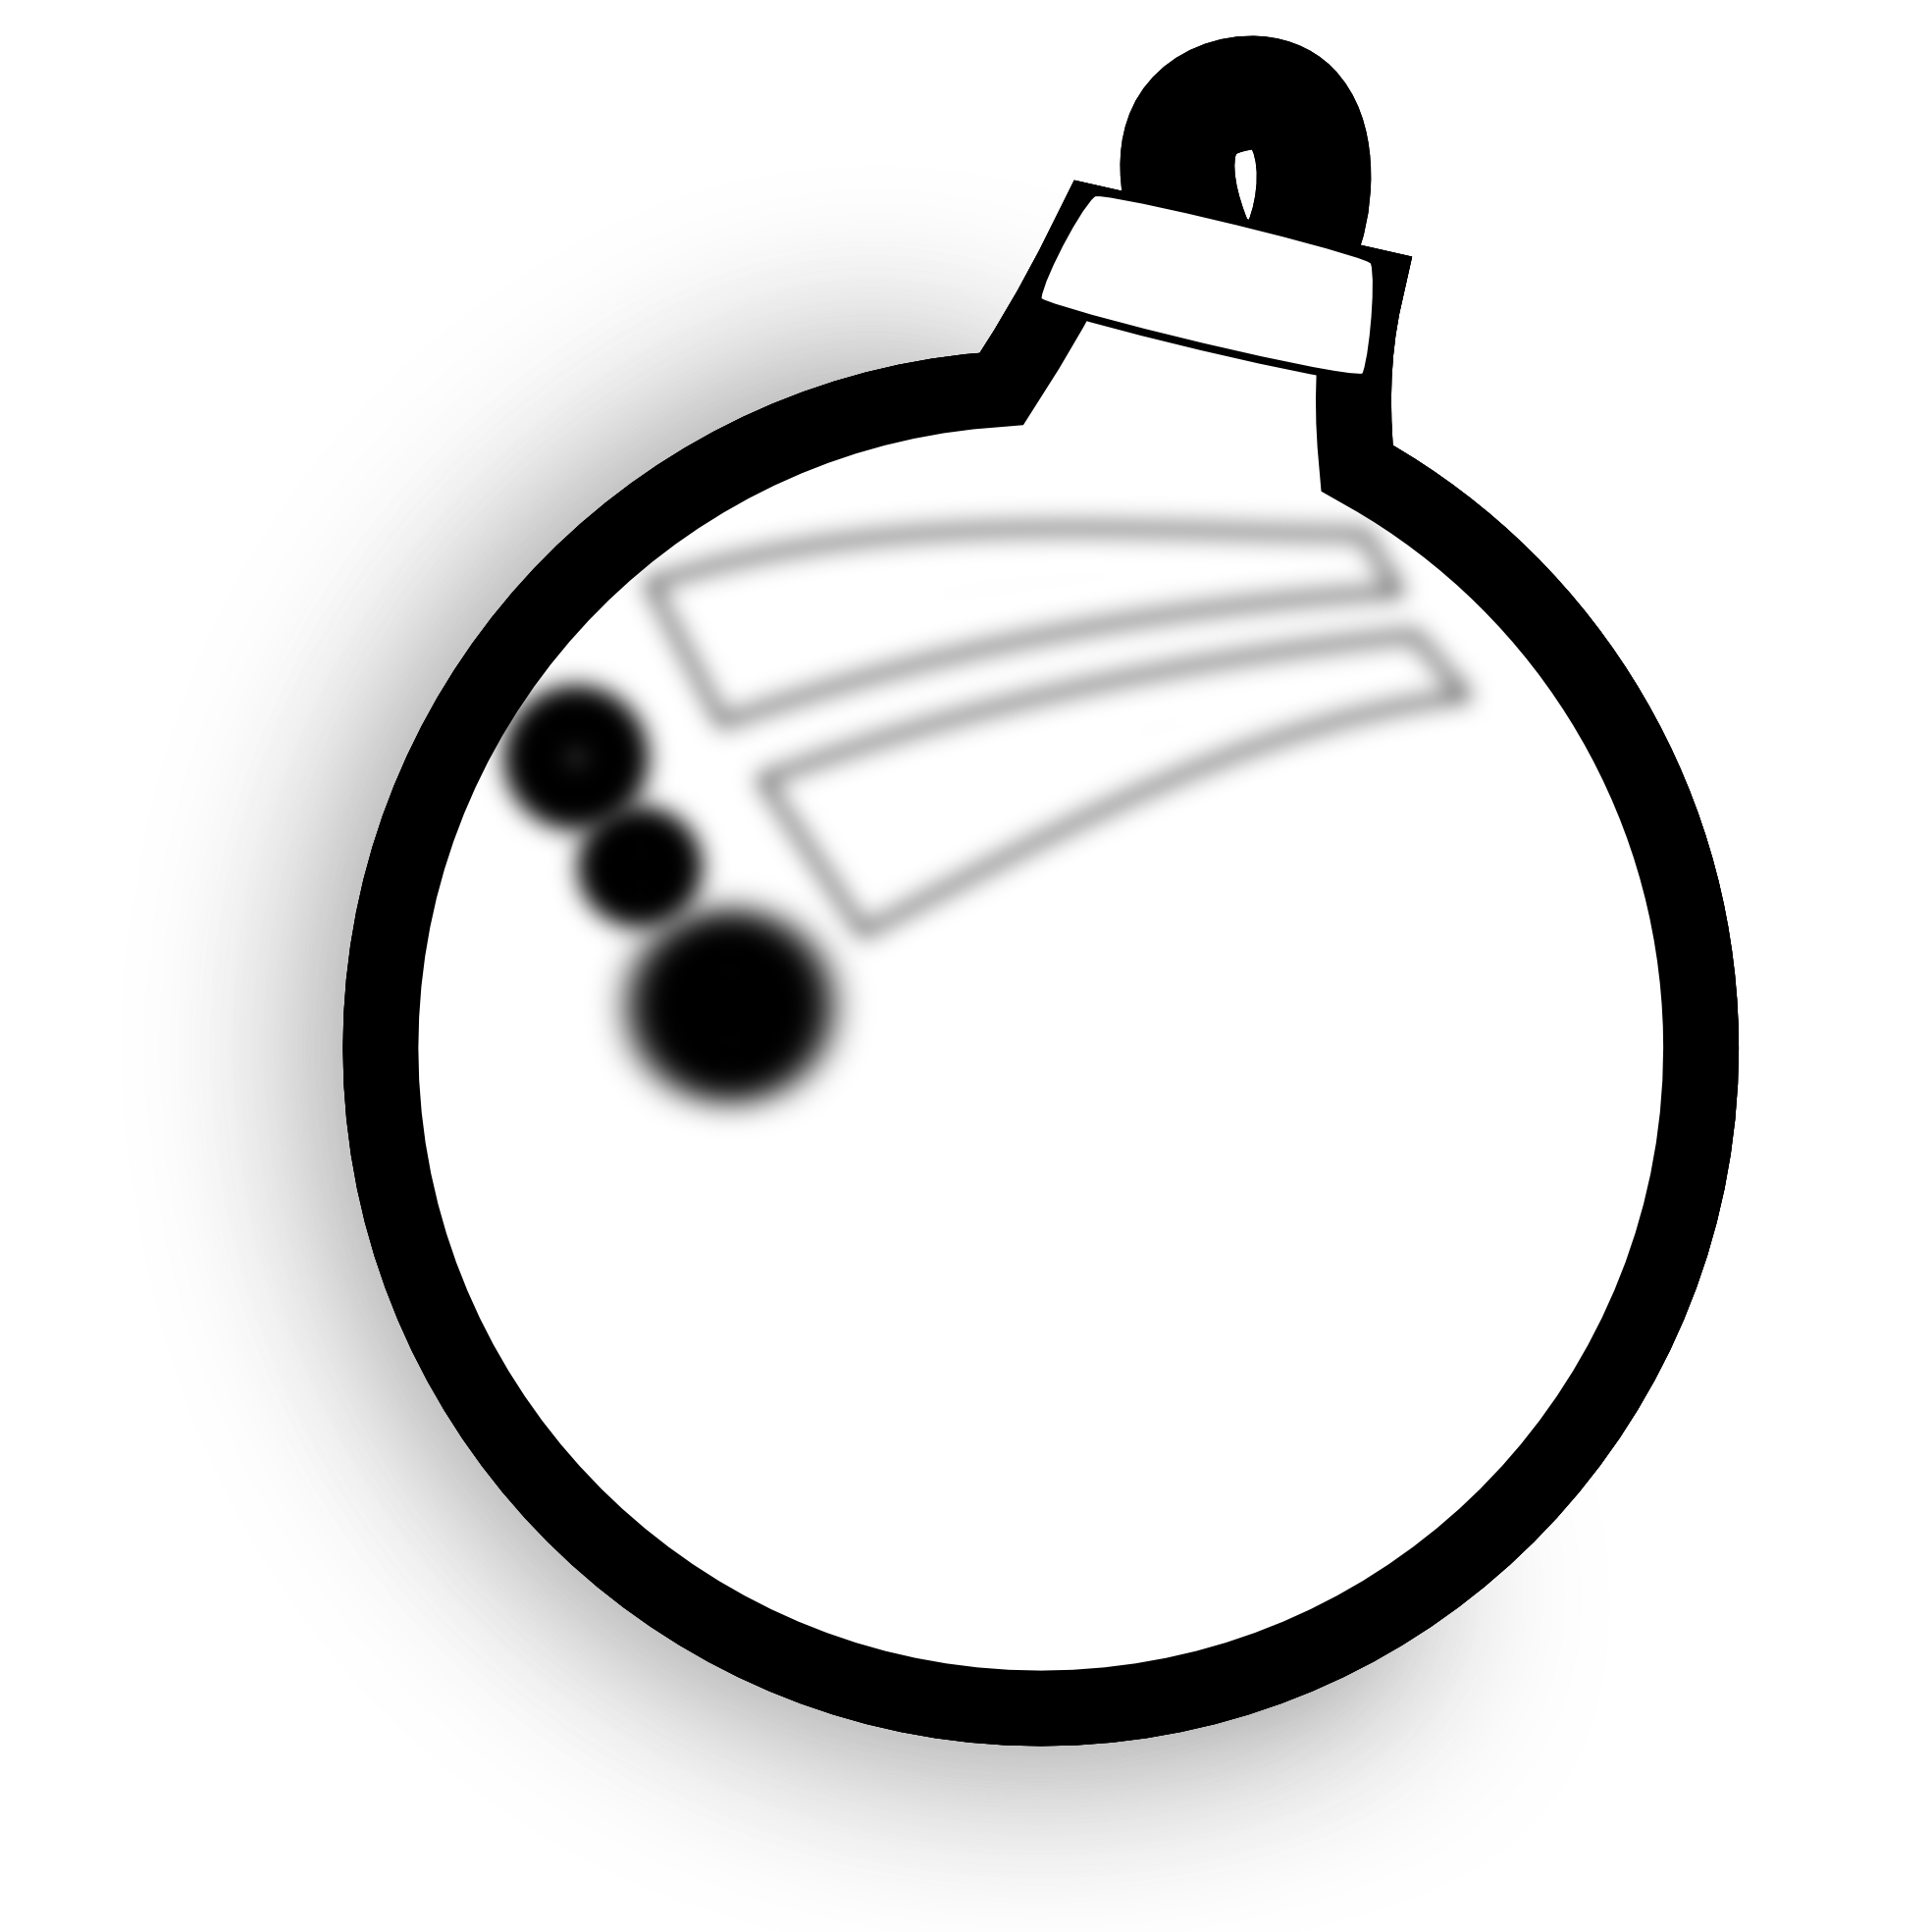 Christmas ornament outline clipart suggest